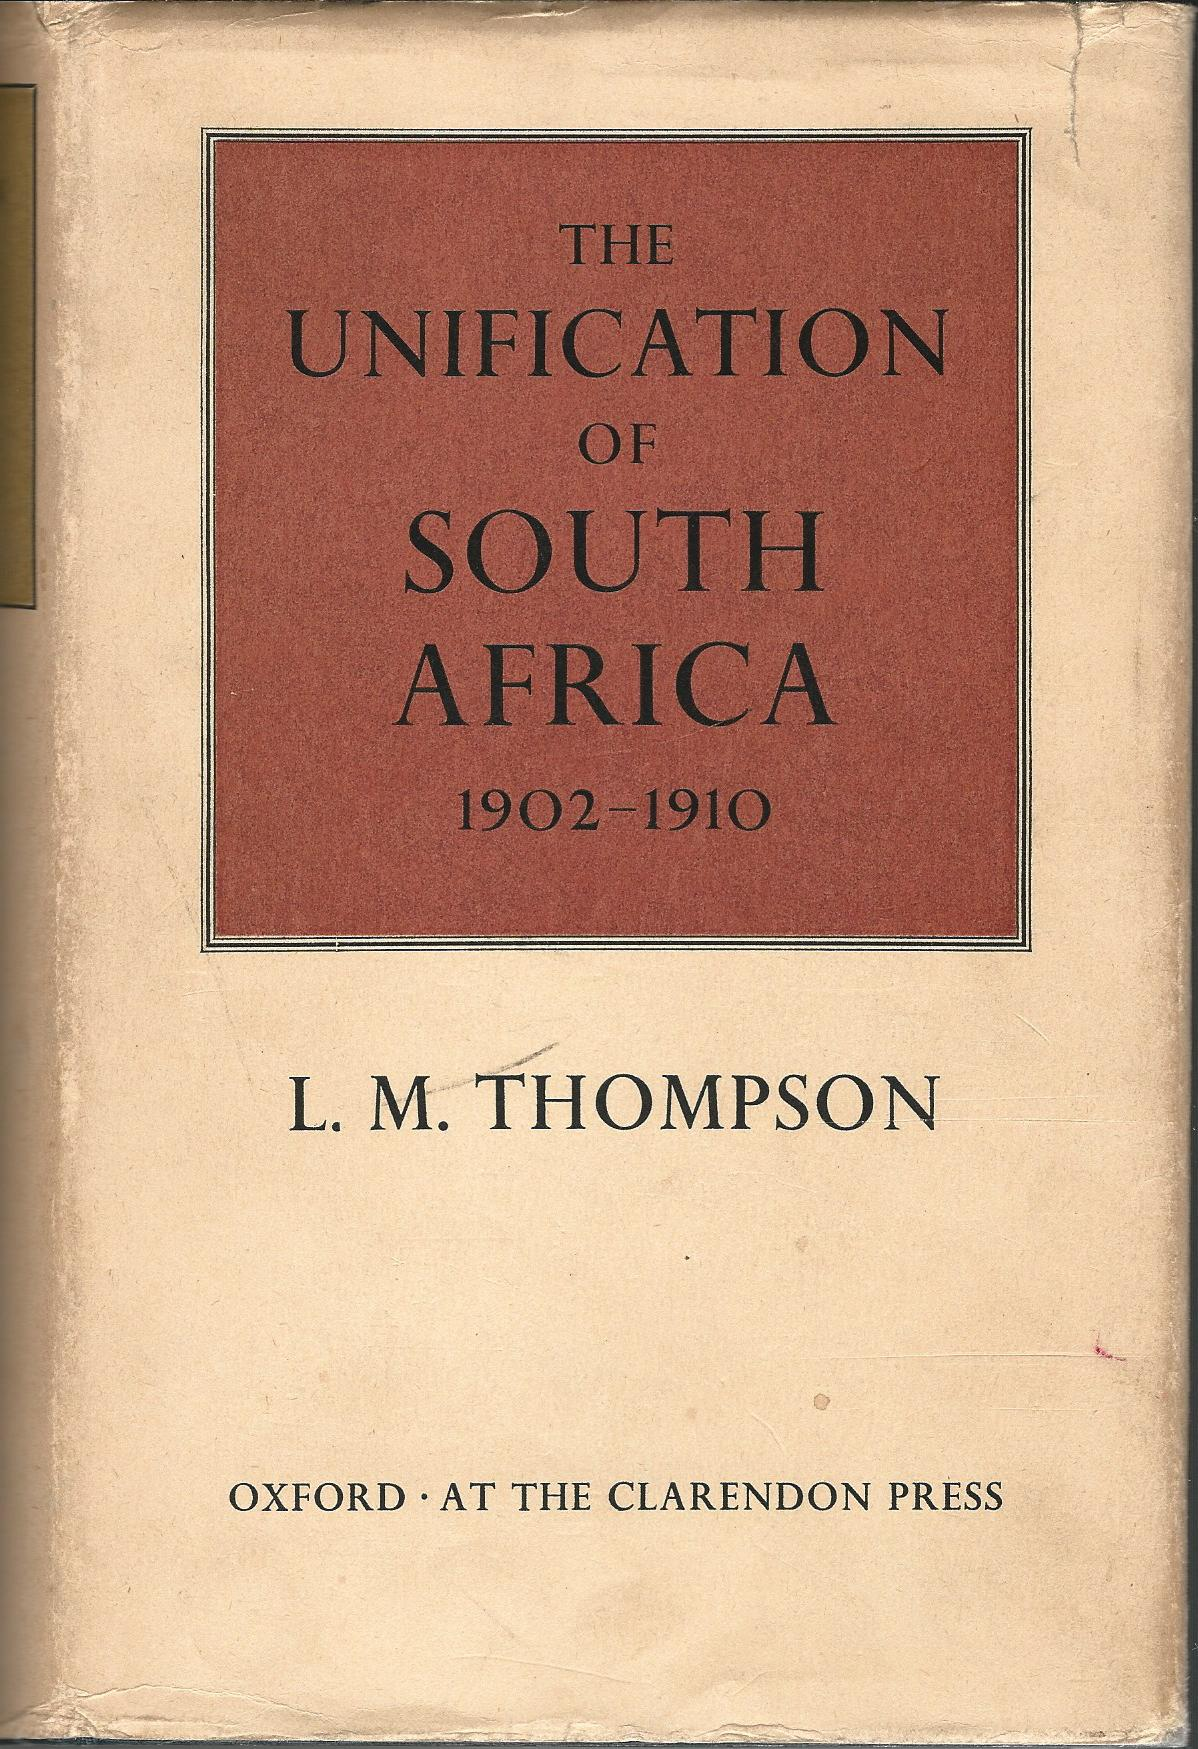 Image for The Unification of South Africa 1902-1910.